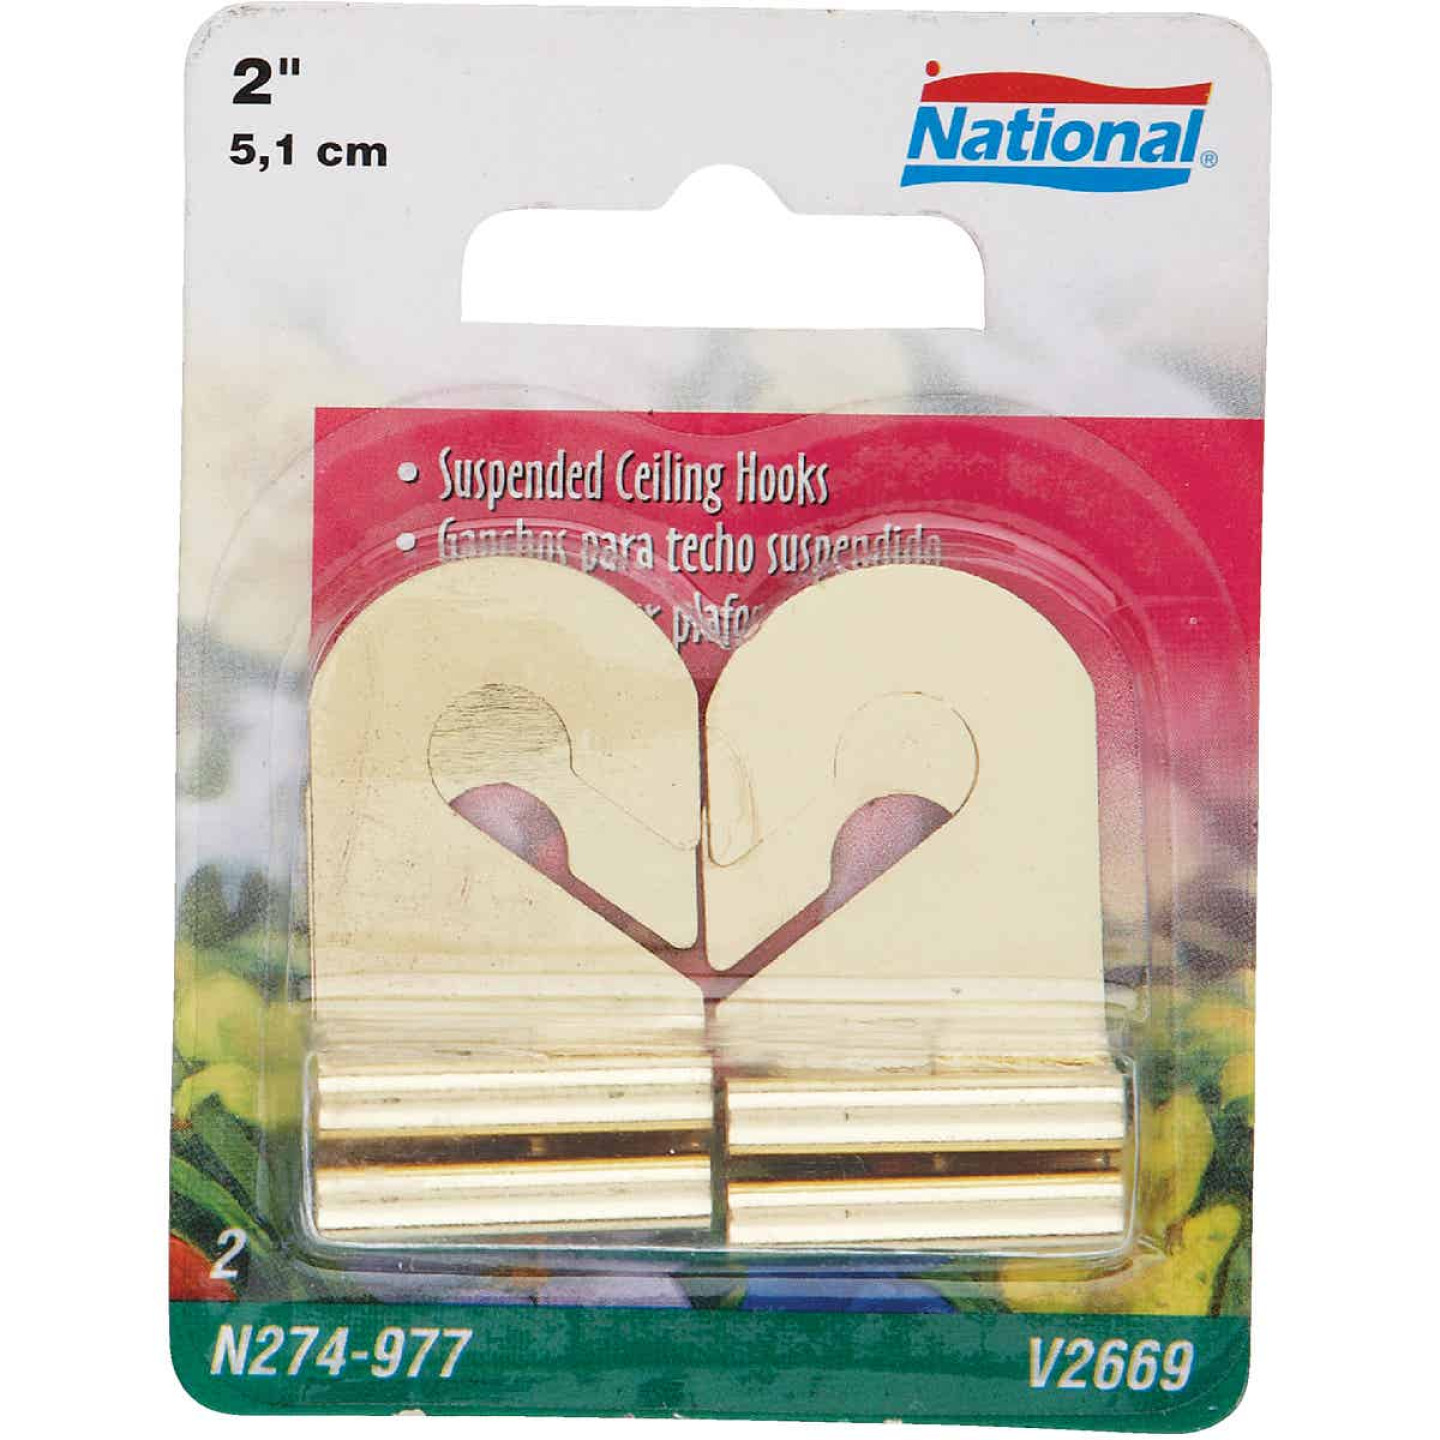 National Brass Suspended Ceiling Hook (2 Pack) Image 1